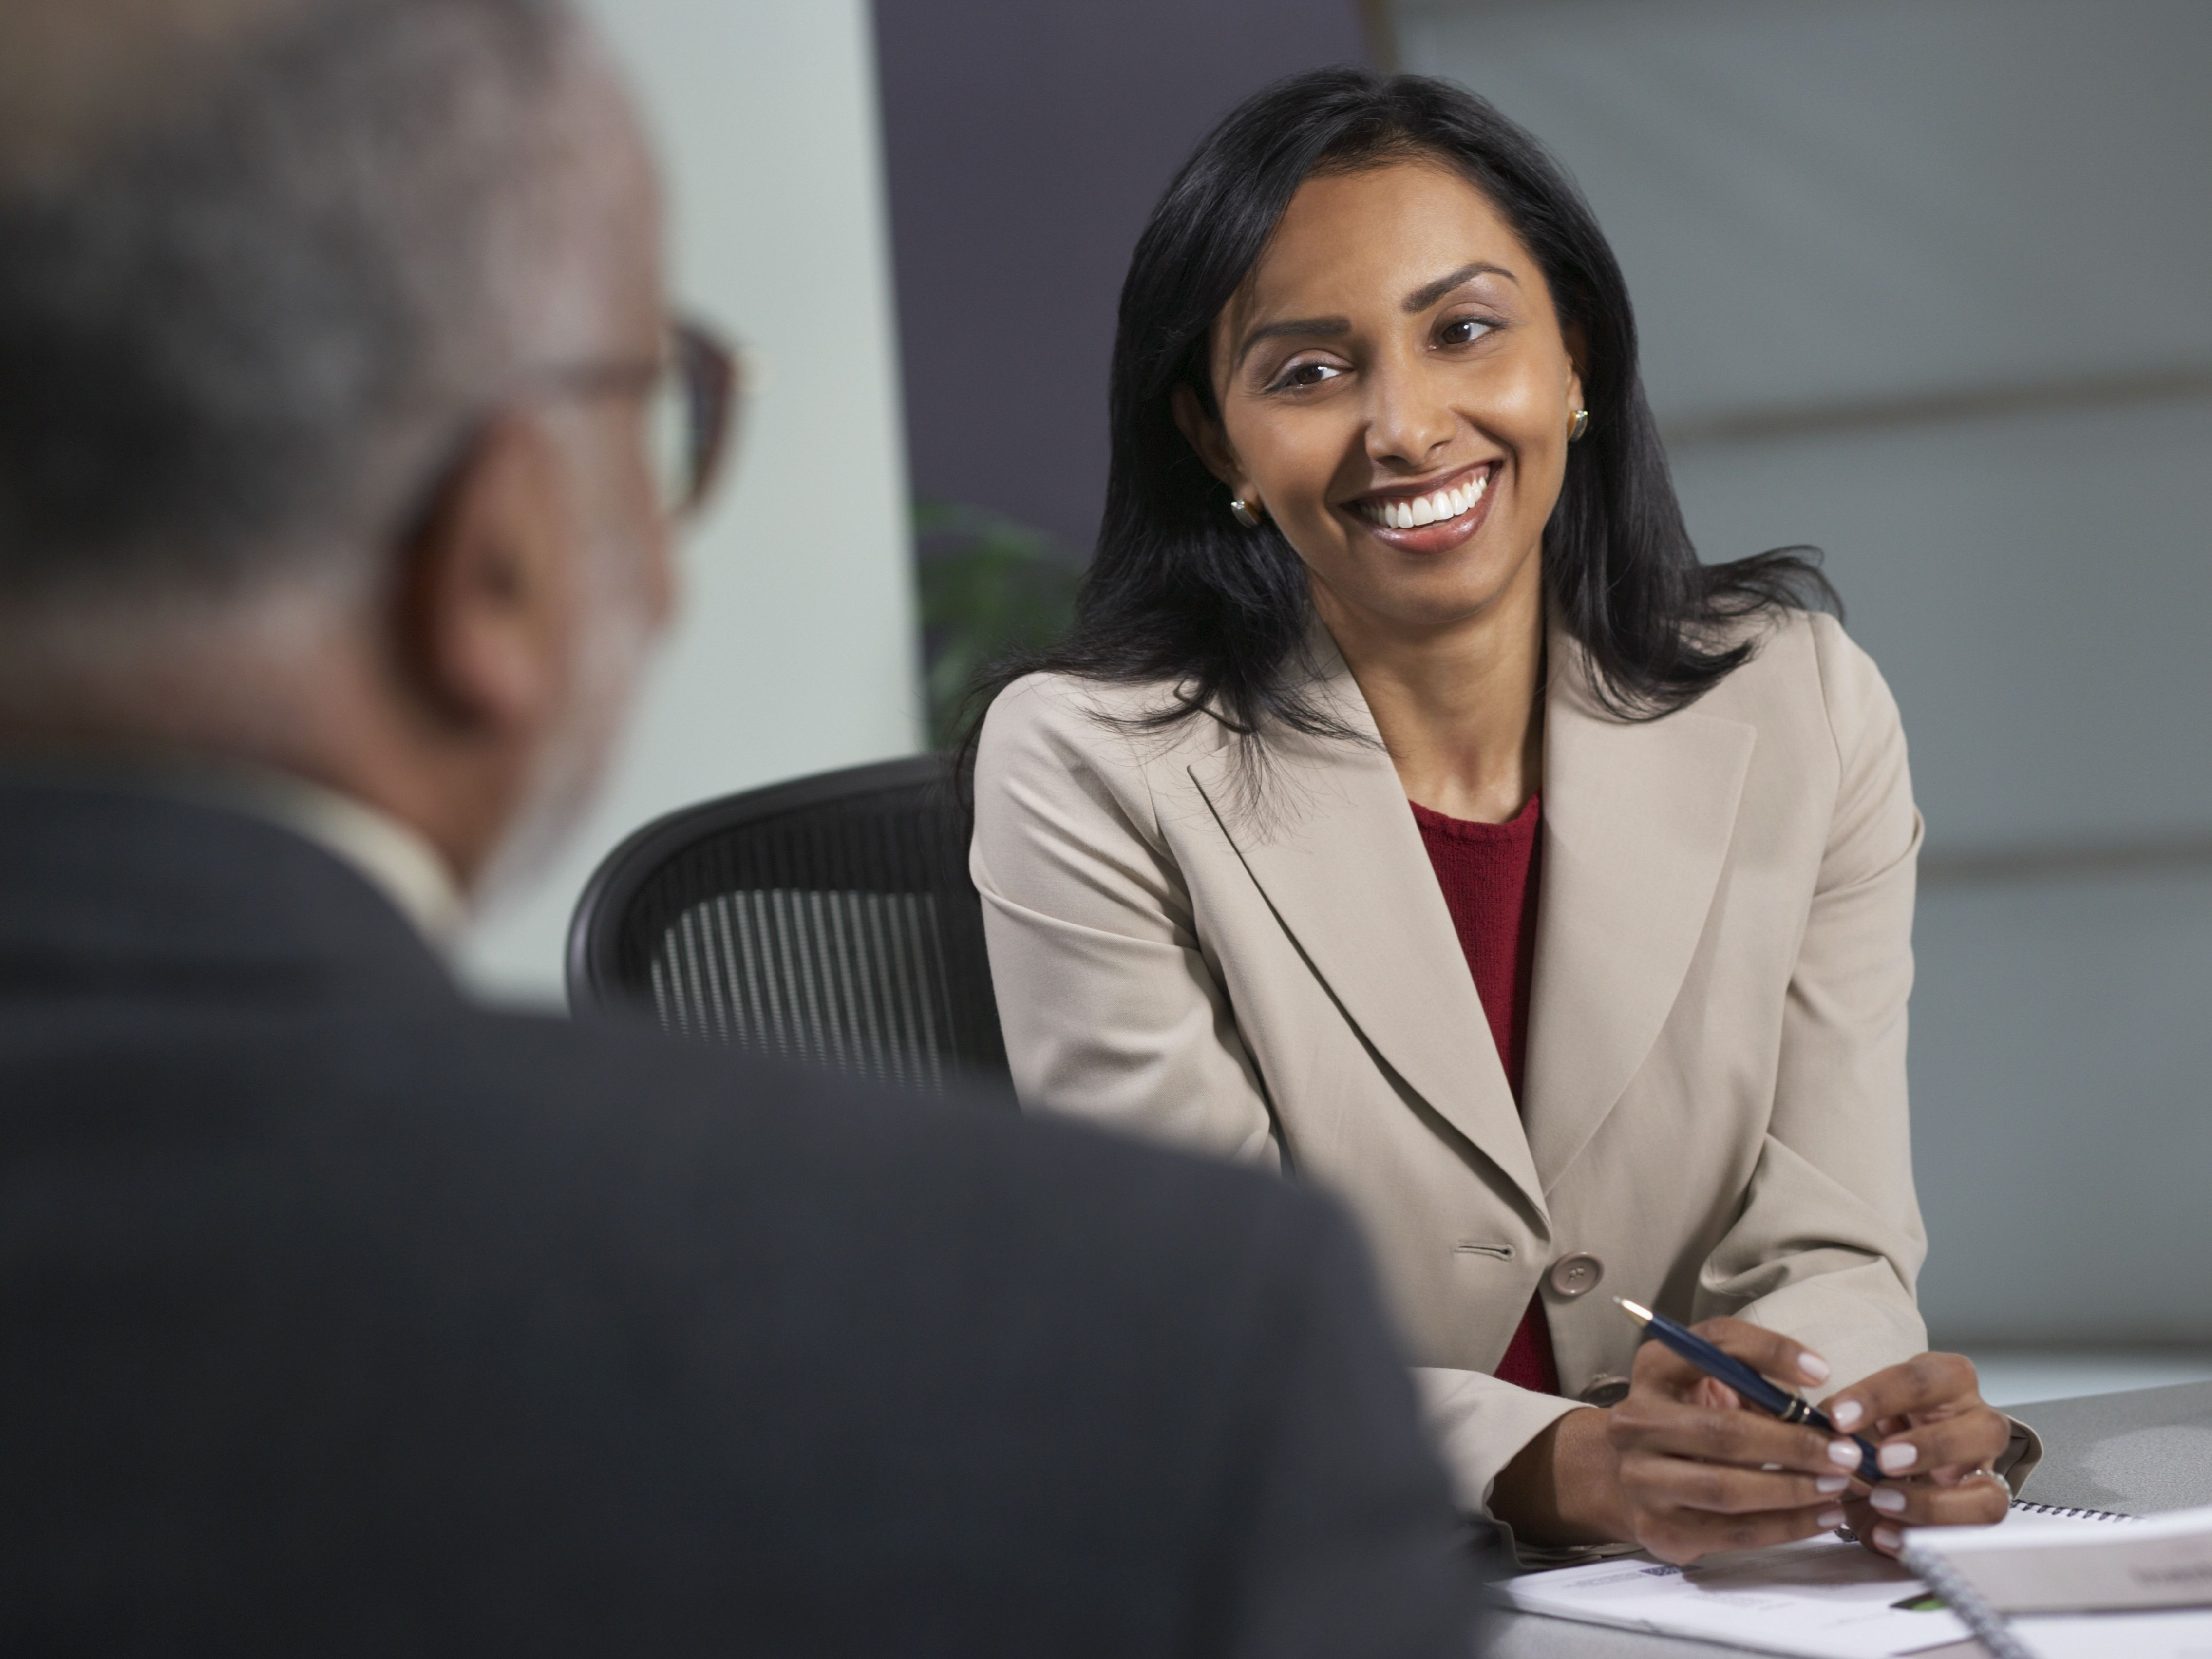 Management Trainee Interview Questions and Answers